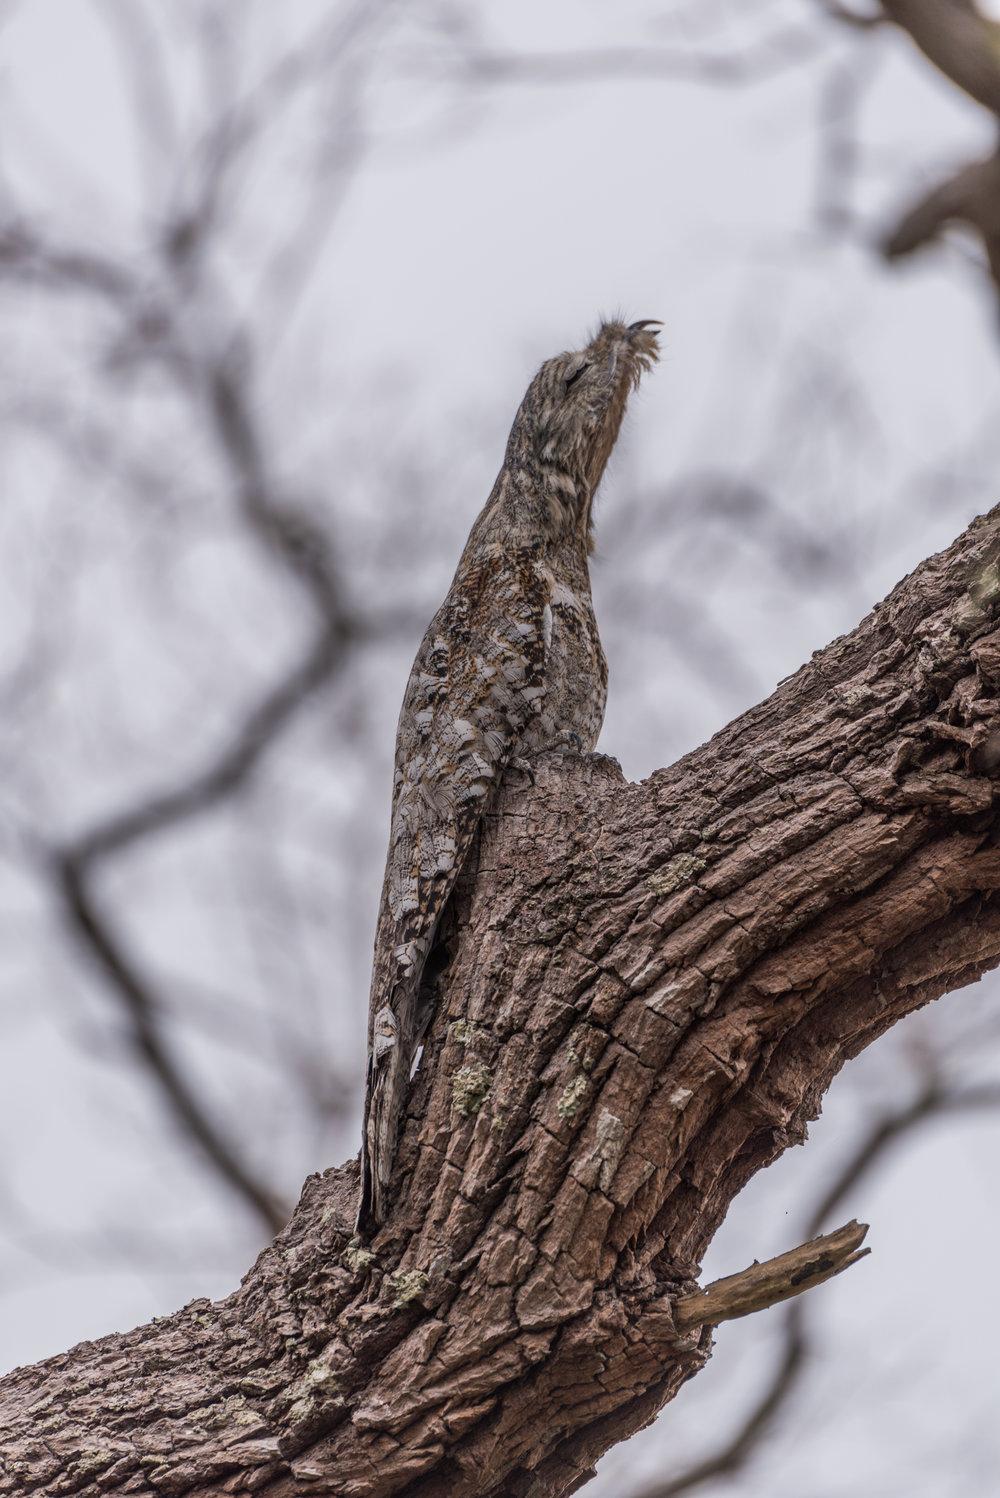 A great potoo or just a bit of a tree...?